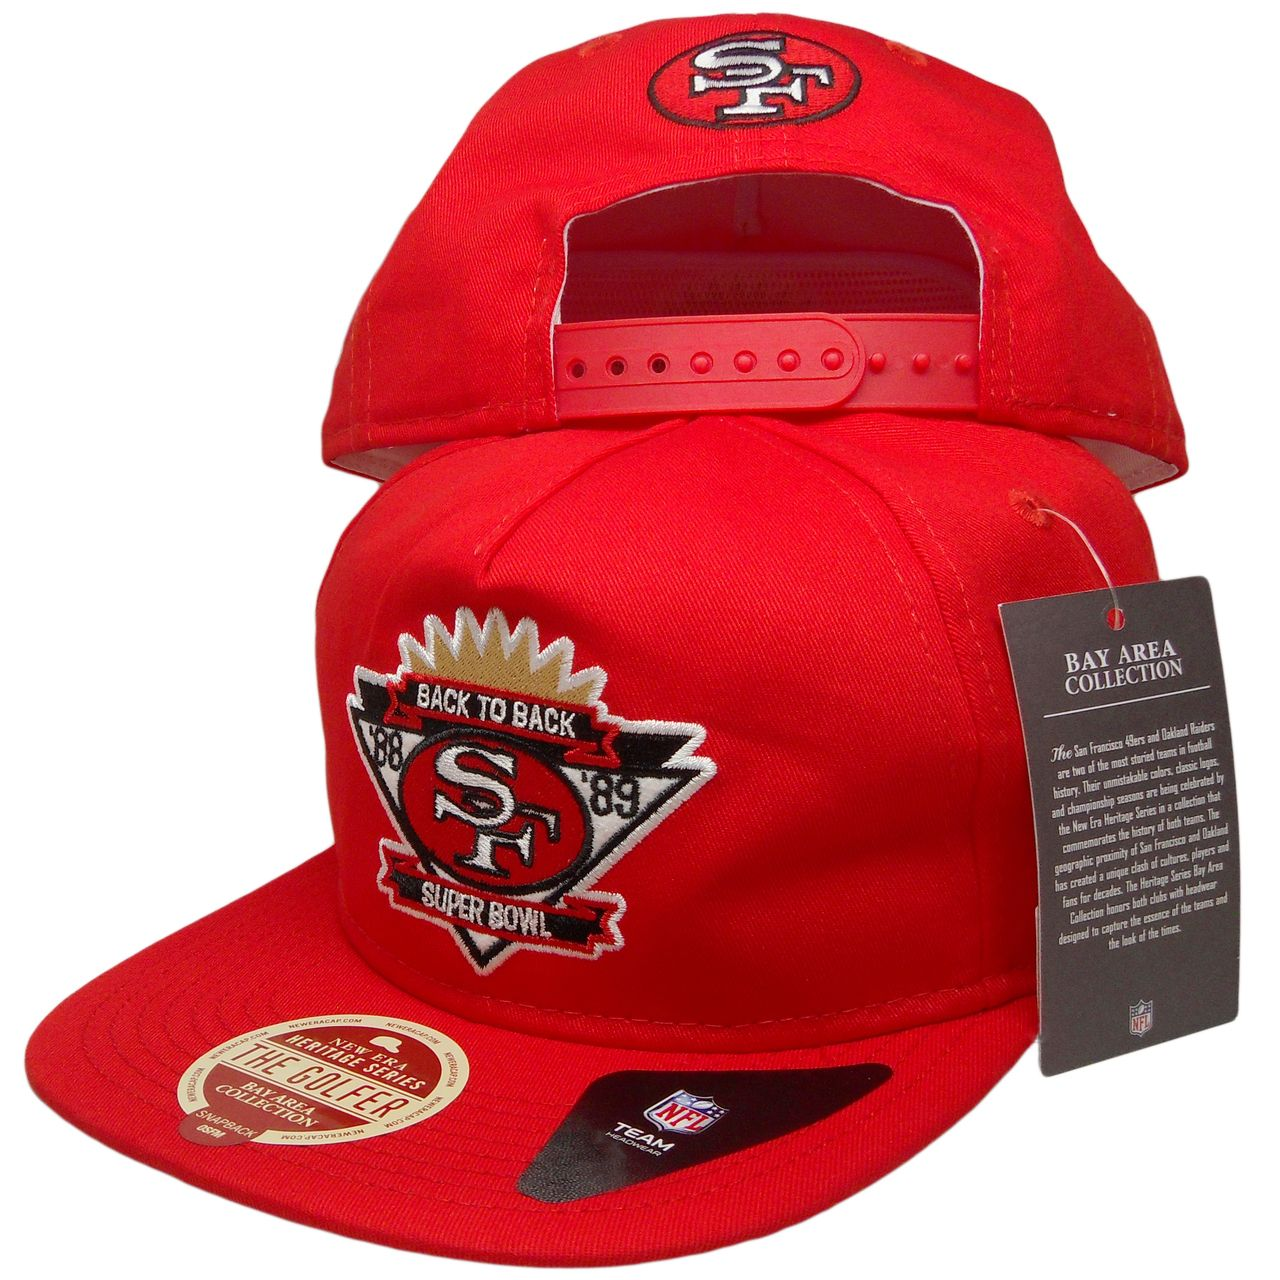 e68c5f95 BAY AREA x NINERS x NEW ERA | S.F. GEAR ET CETERA | Snapback hats ...